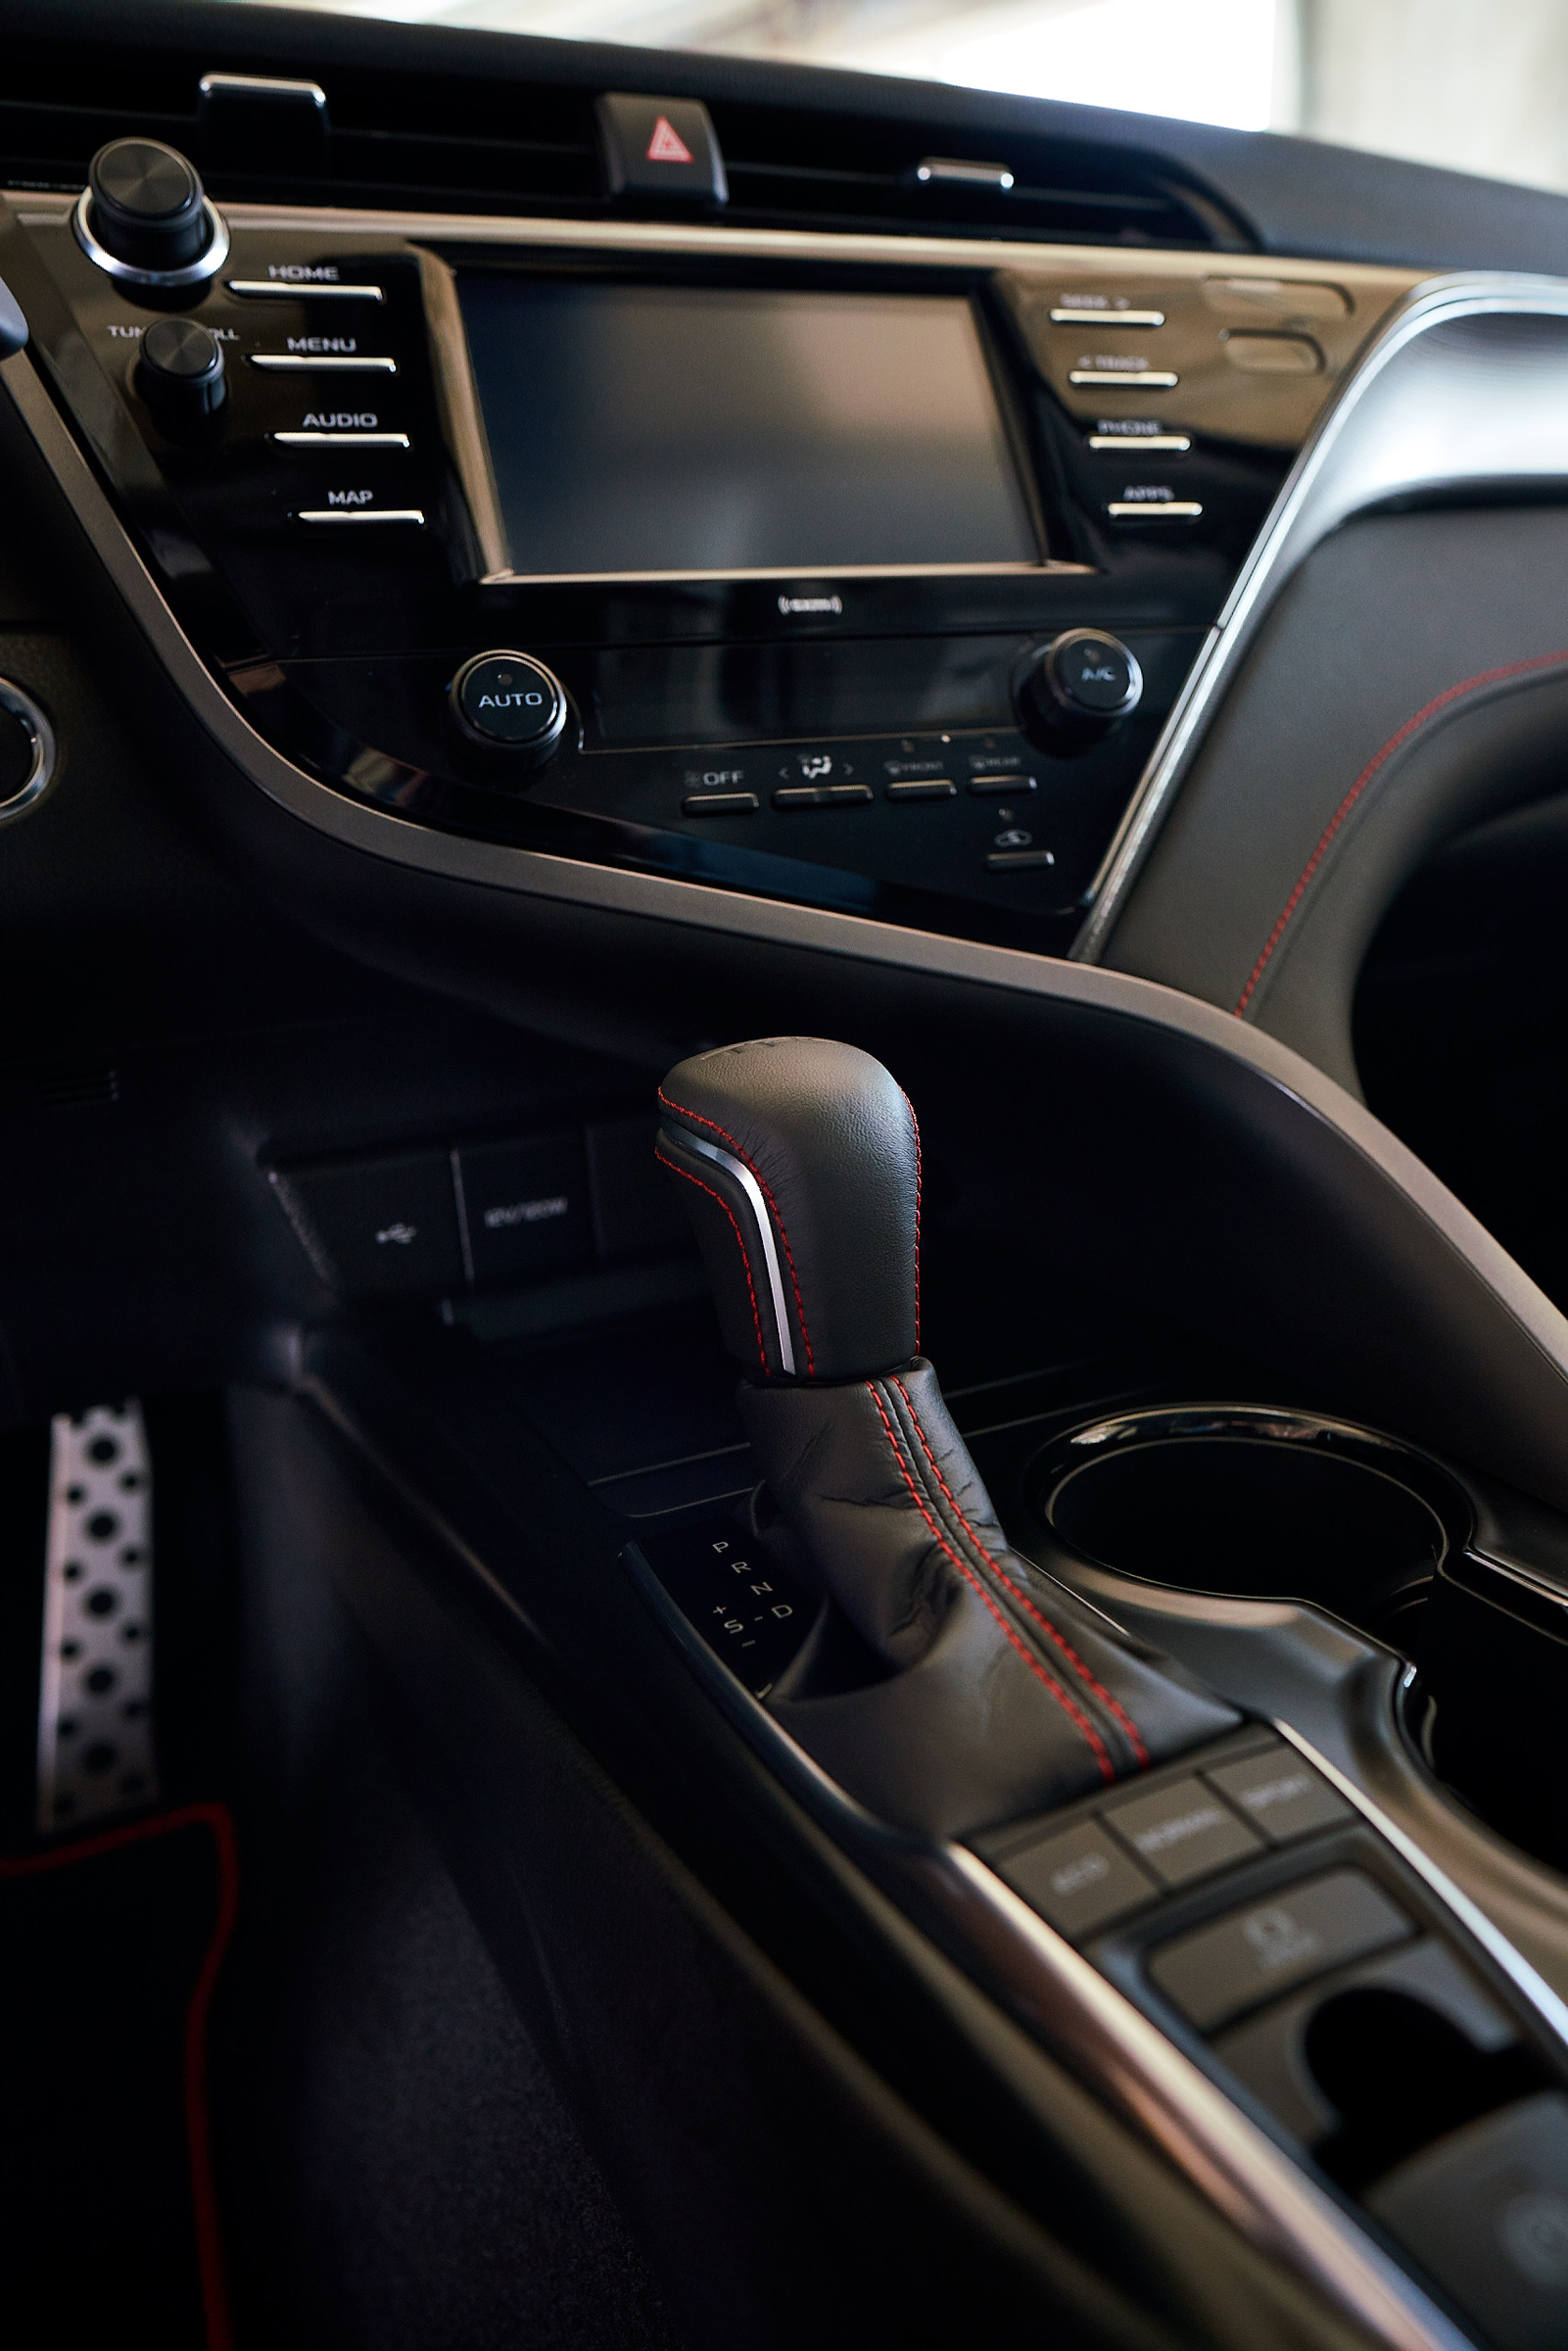 Ever Better With New Models And Features The Fun Stylish And Tech Savvy 2020 Toyota Camry Sep 19 2019